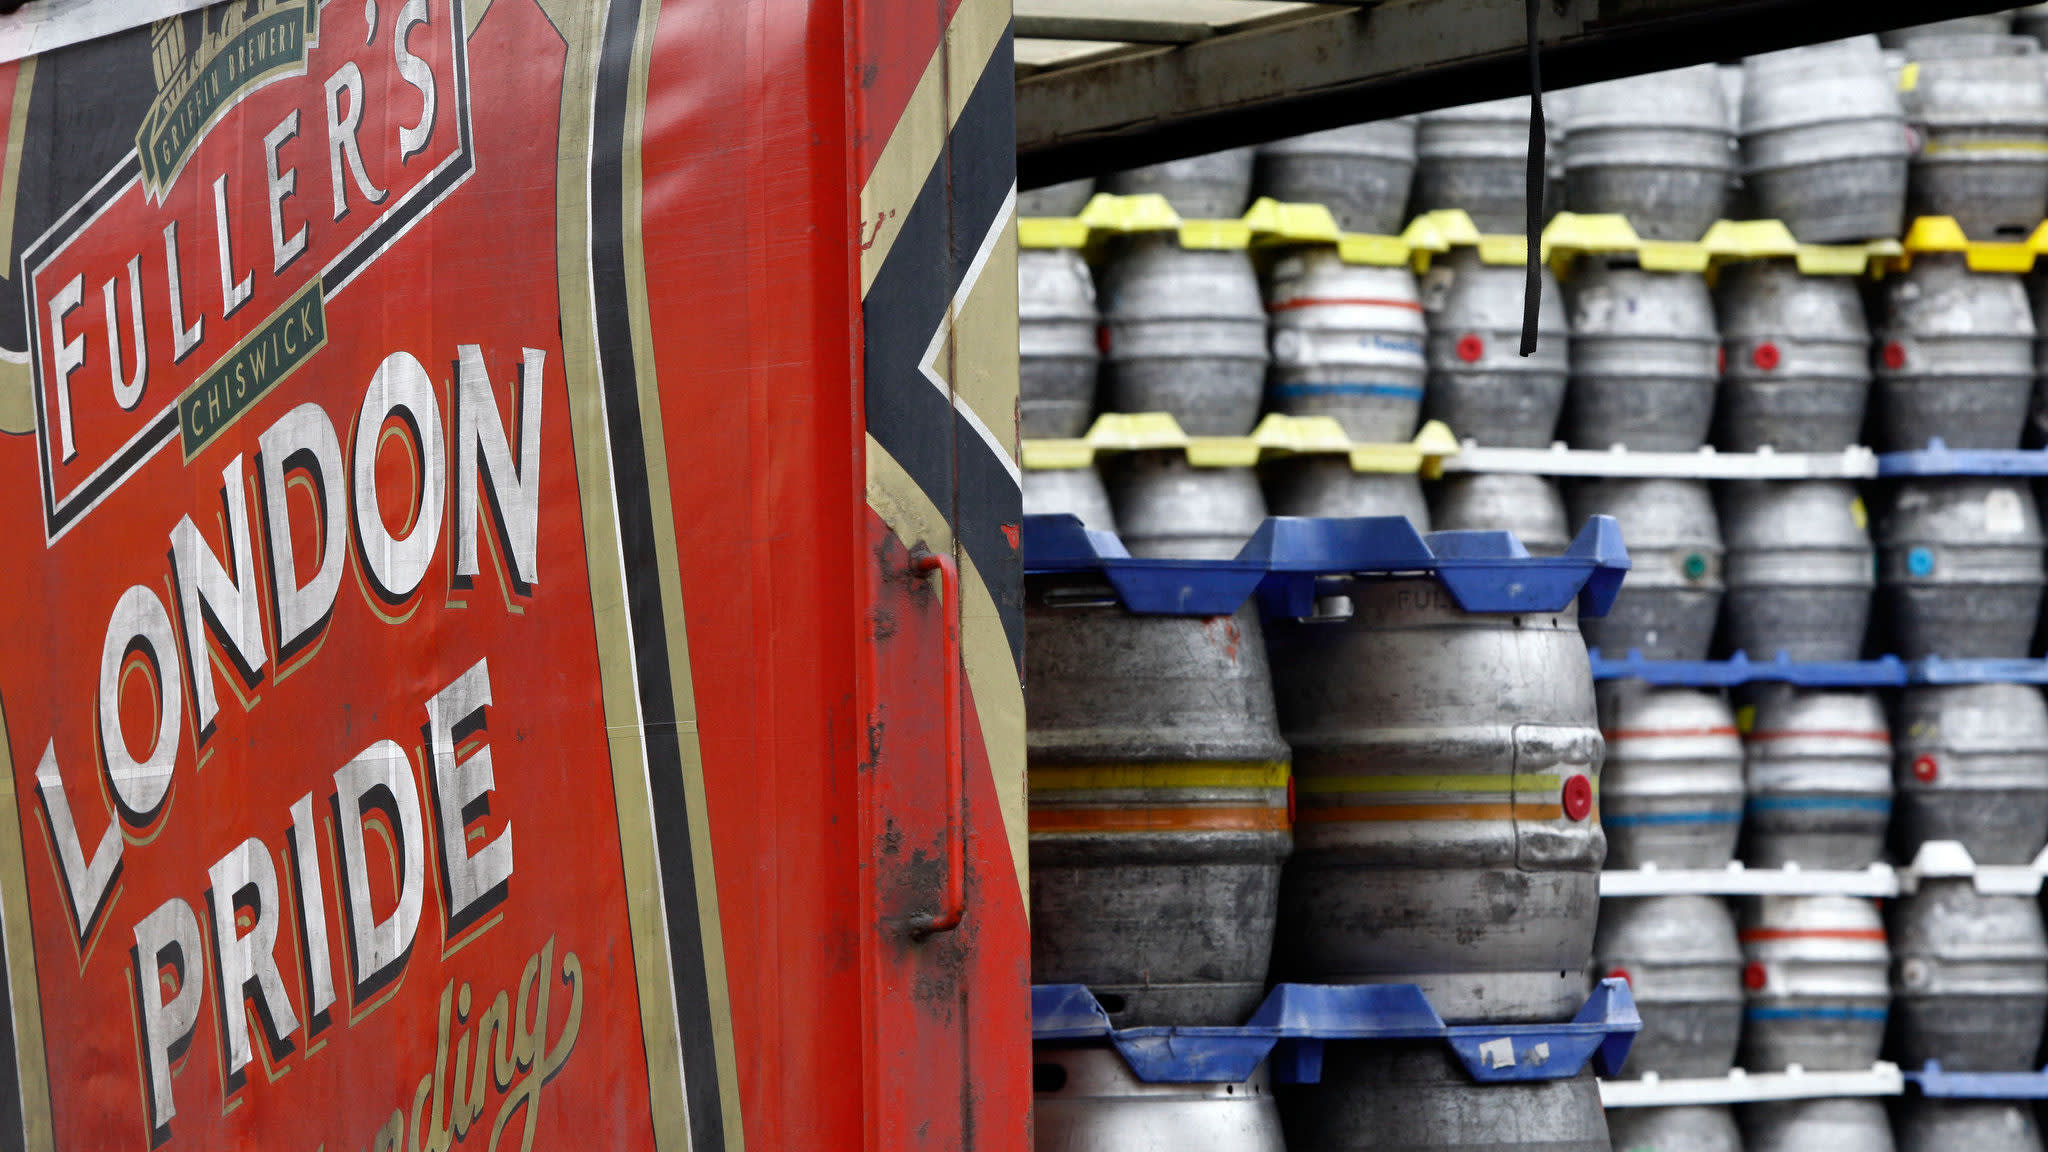 Fuller's exits brewing with £250m sale to Japan's Asahi | Financial Times